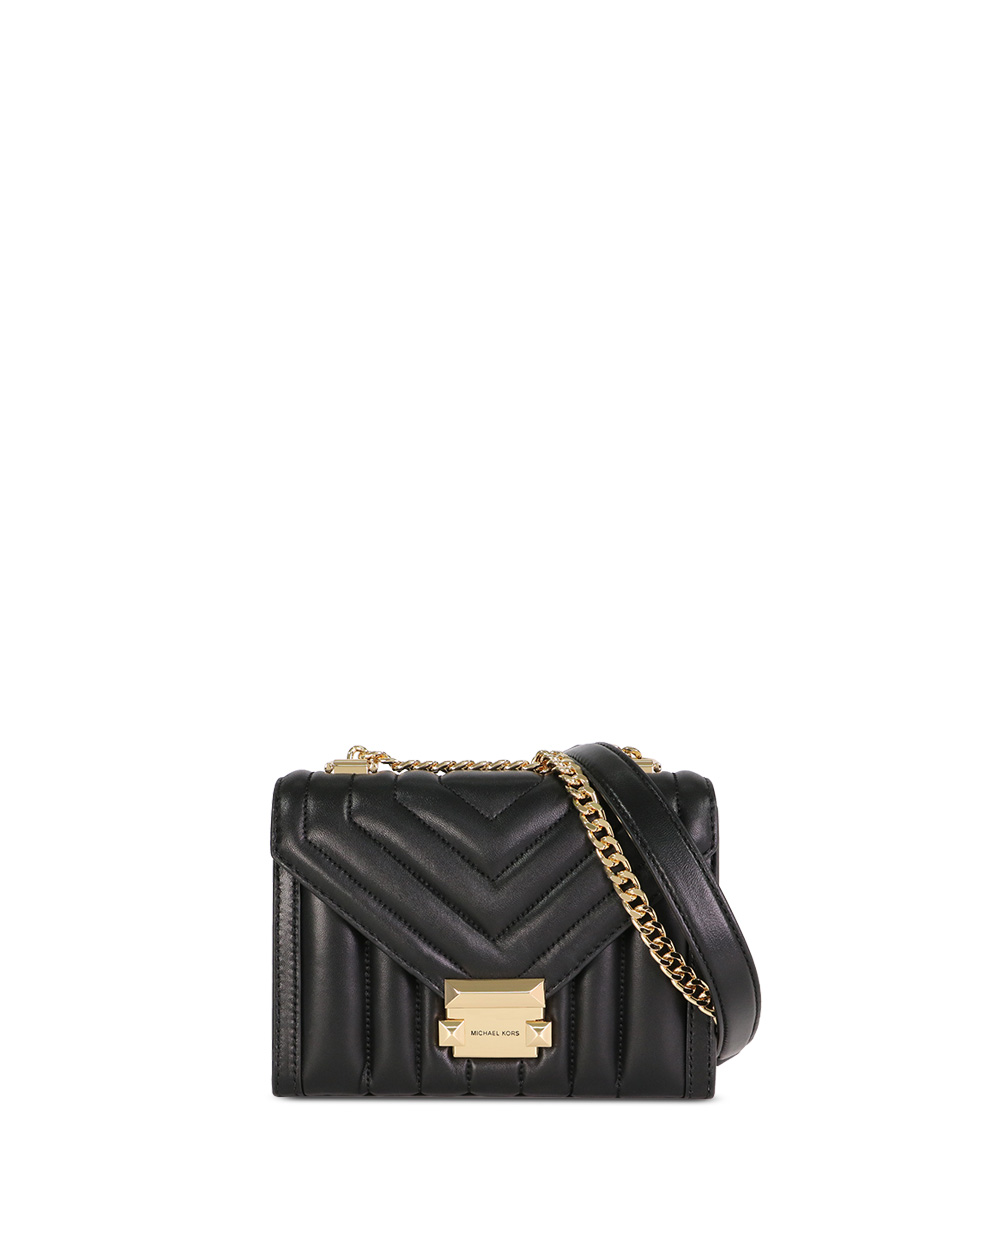 Whitney Large Quilted Leather Convertible Shoulder Bag